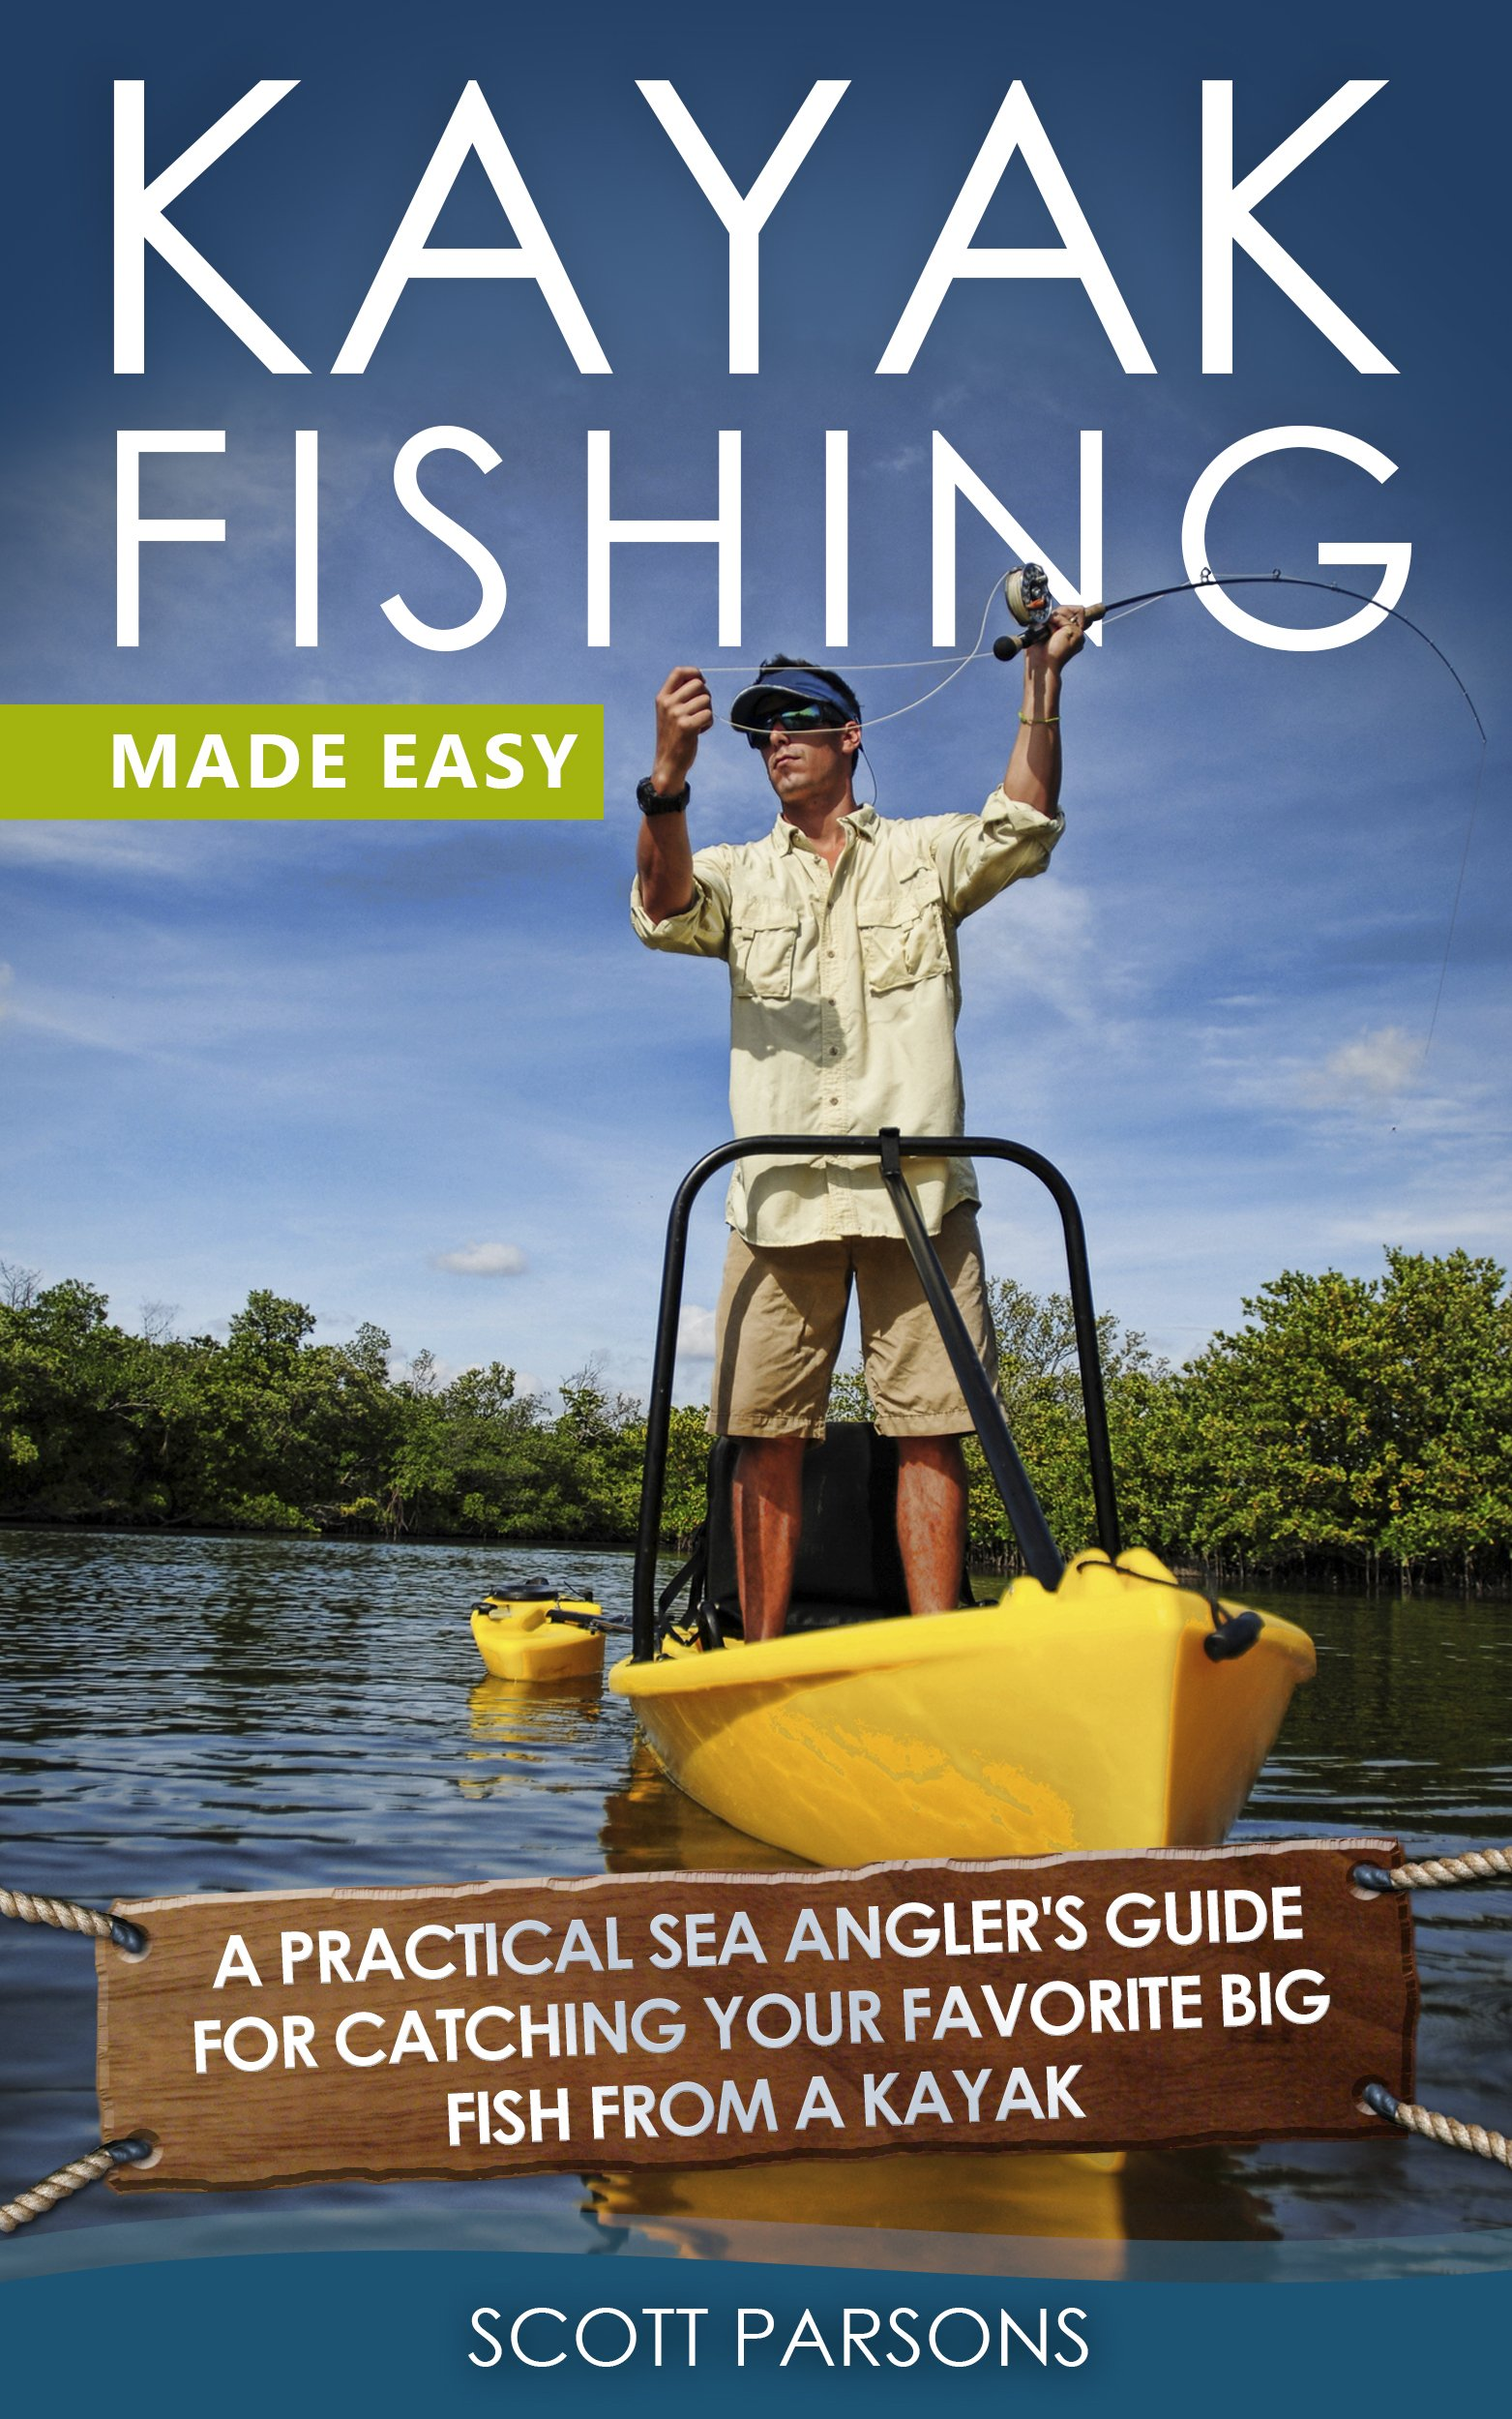 Kayak Fishing: A Practical Sea Angler's Guide for Catching Your Favorite Big Fish from a Kayak (Kayaking) (English Edition)